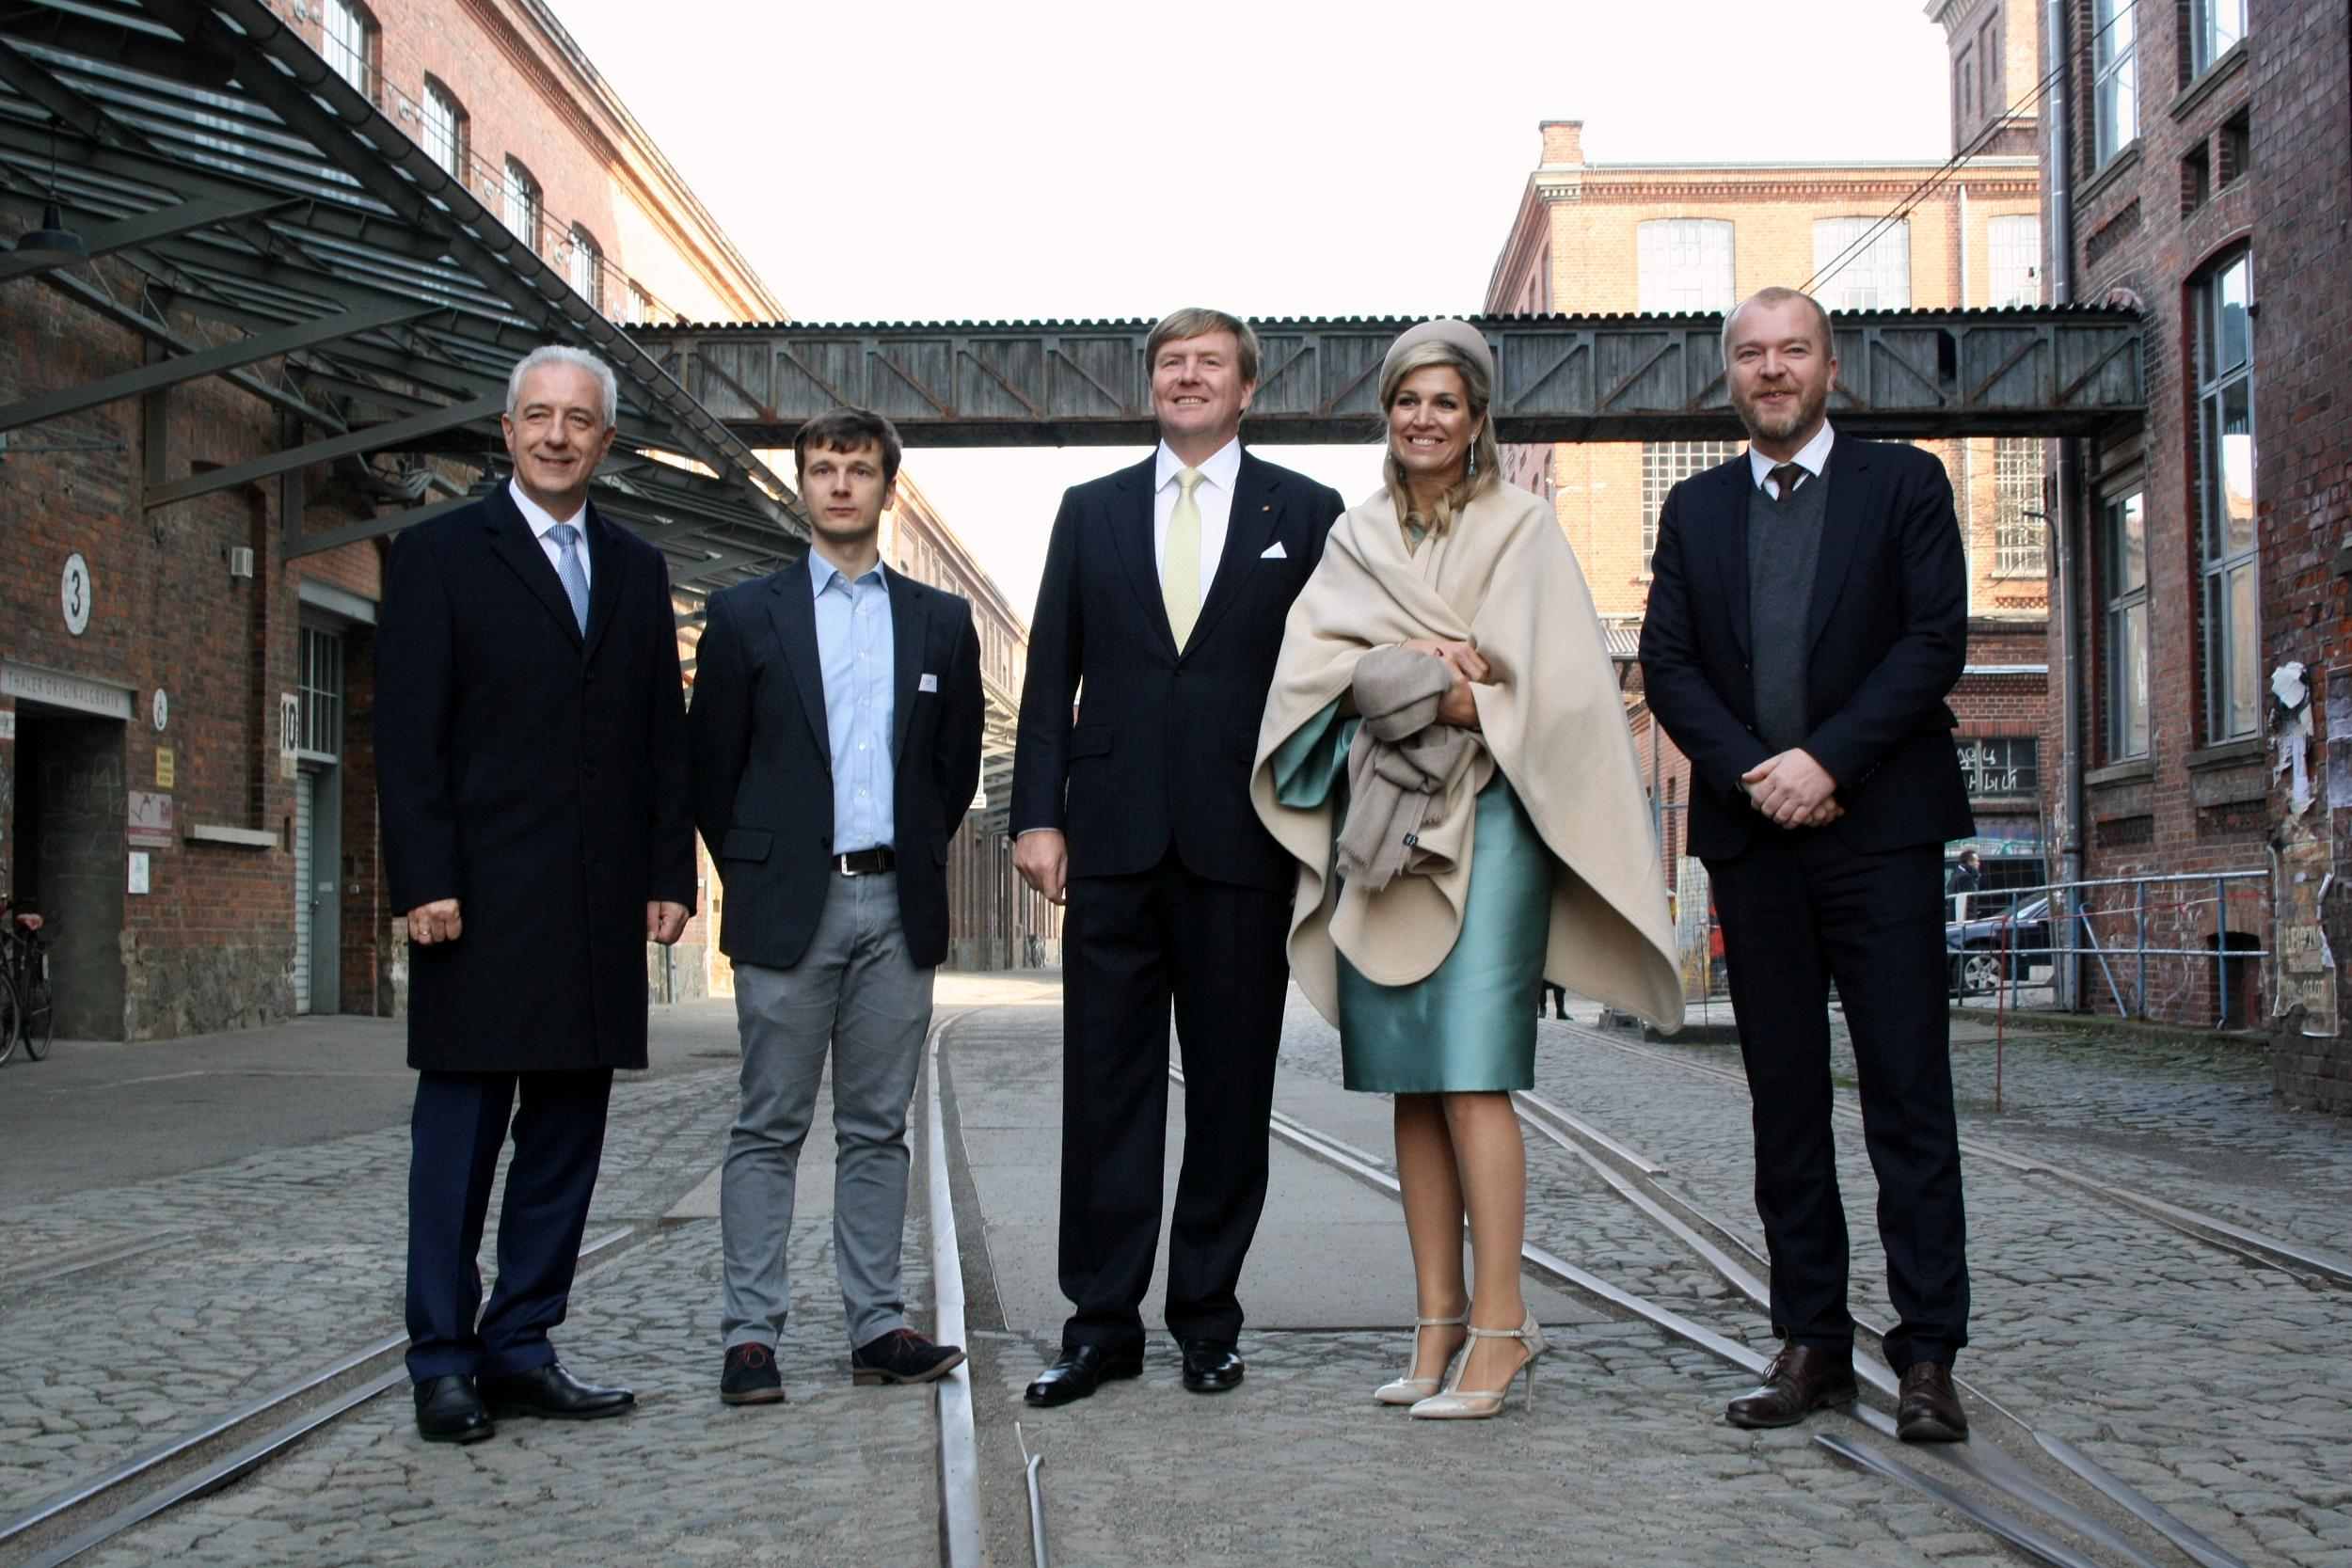 King Willem-Alexander, his wife Queen Máxima as well as their accompanying delegation from the Netherlands